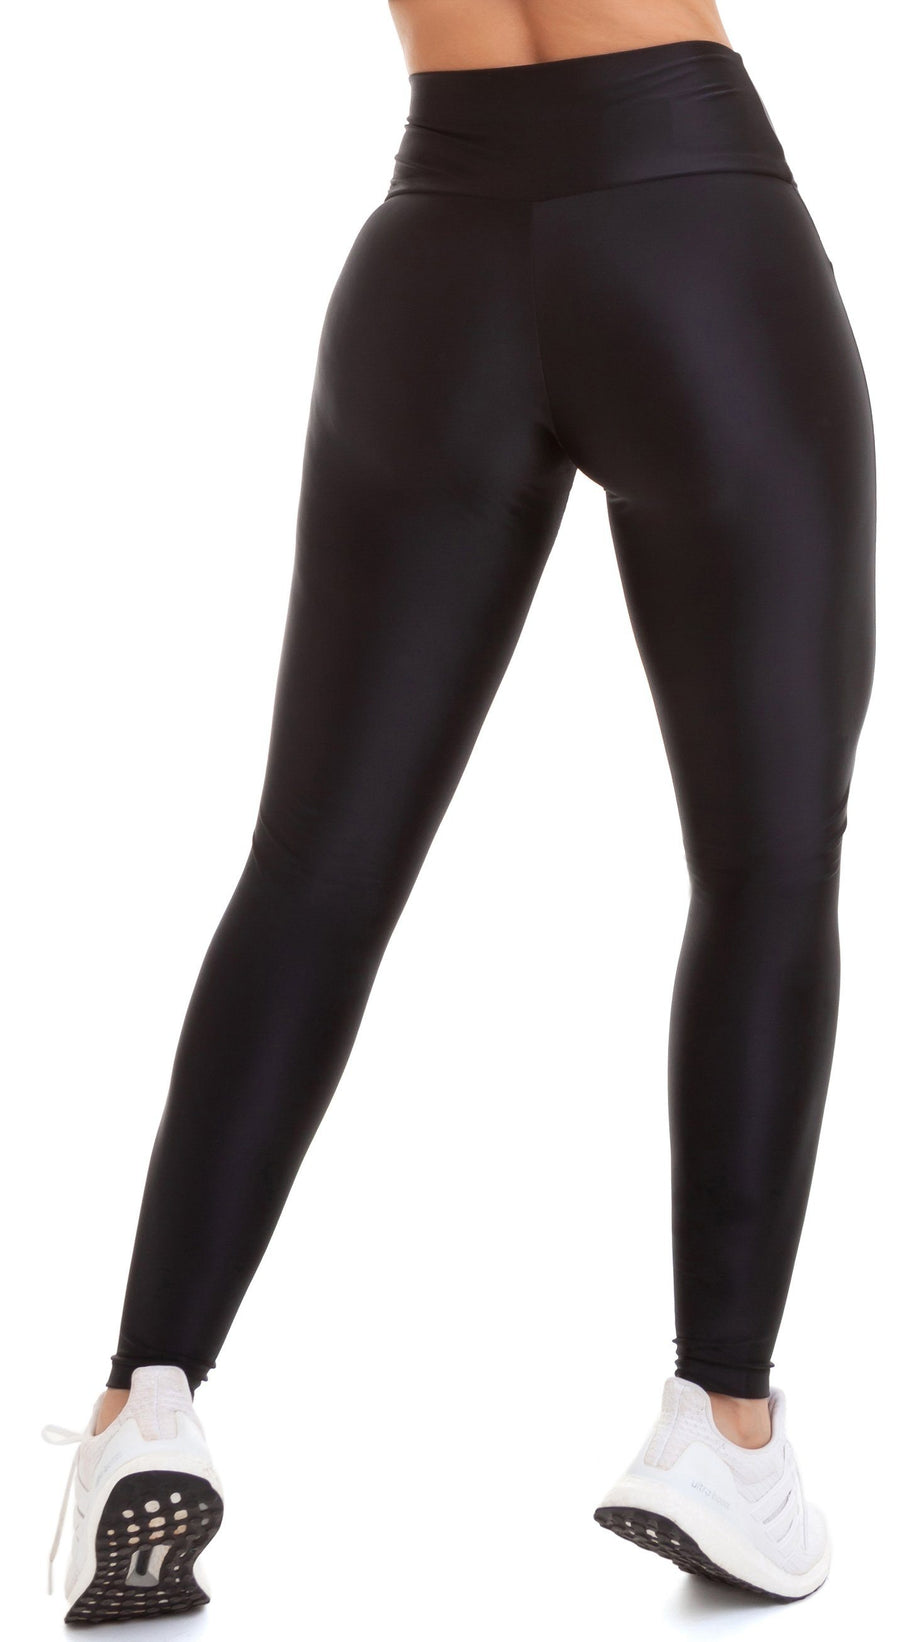 Brazilian Workout Legging - Atletika Posh Black